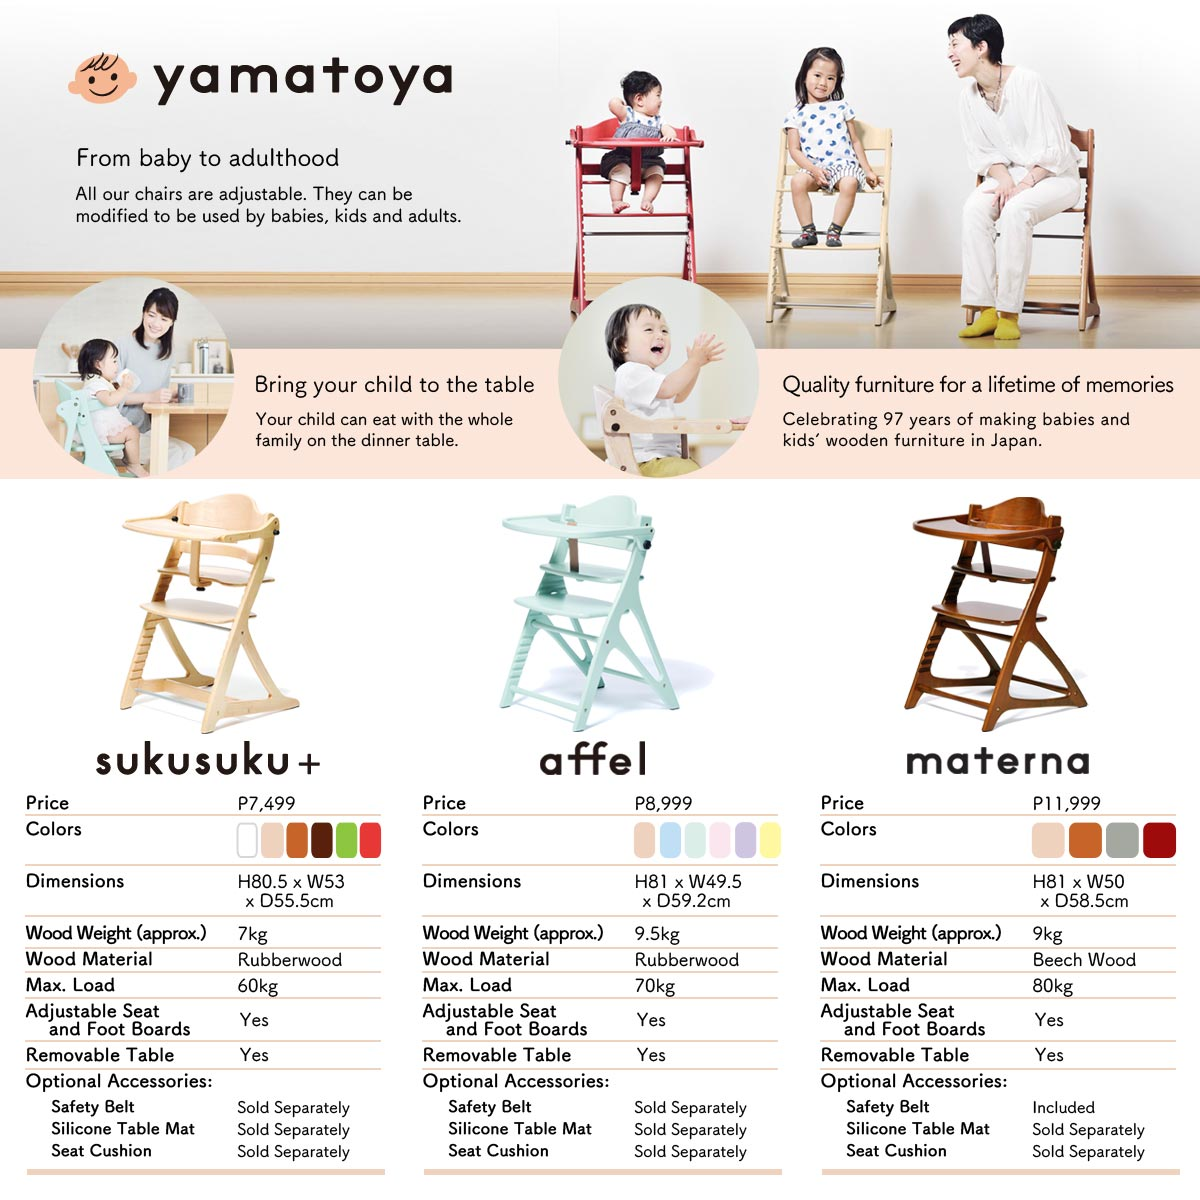 Yamatoya pricelist for Sukusuku, Affel, and Materna